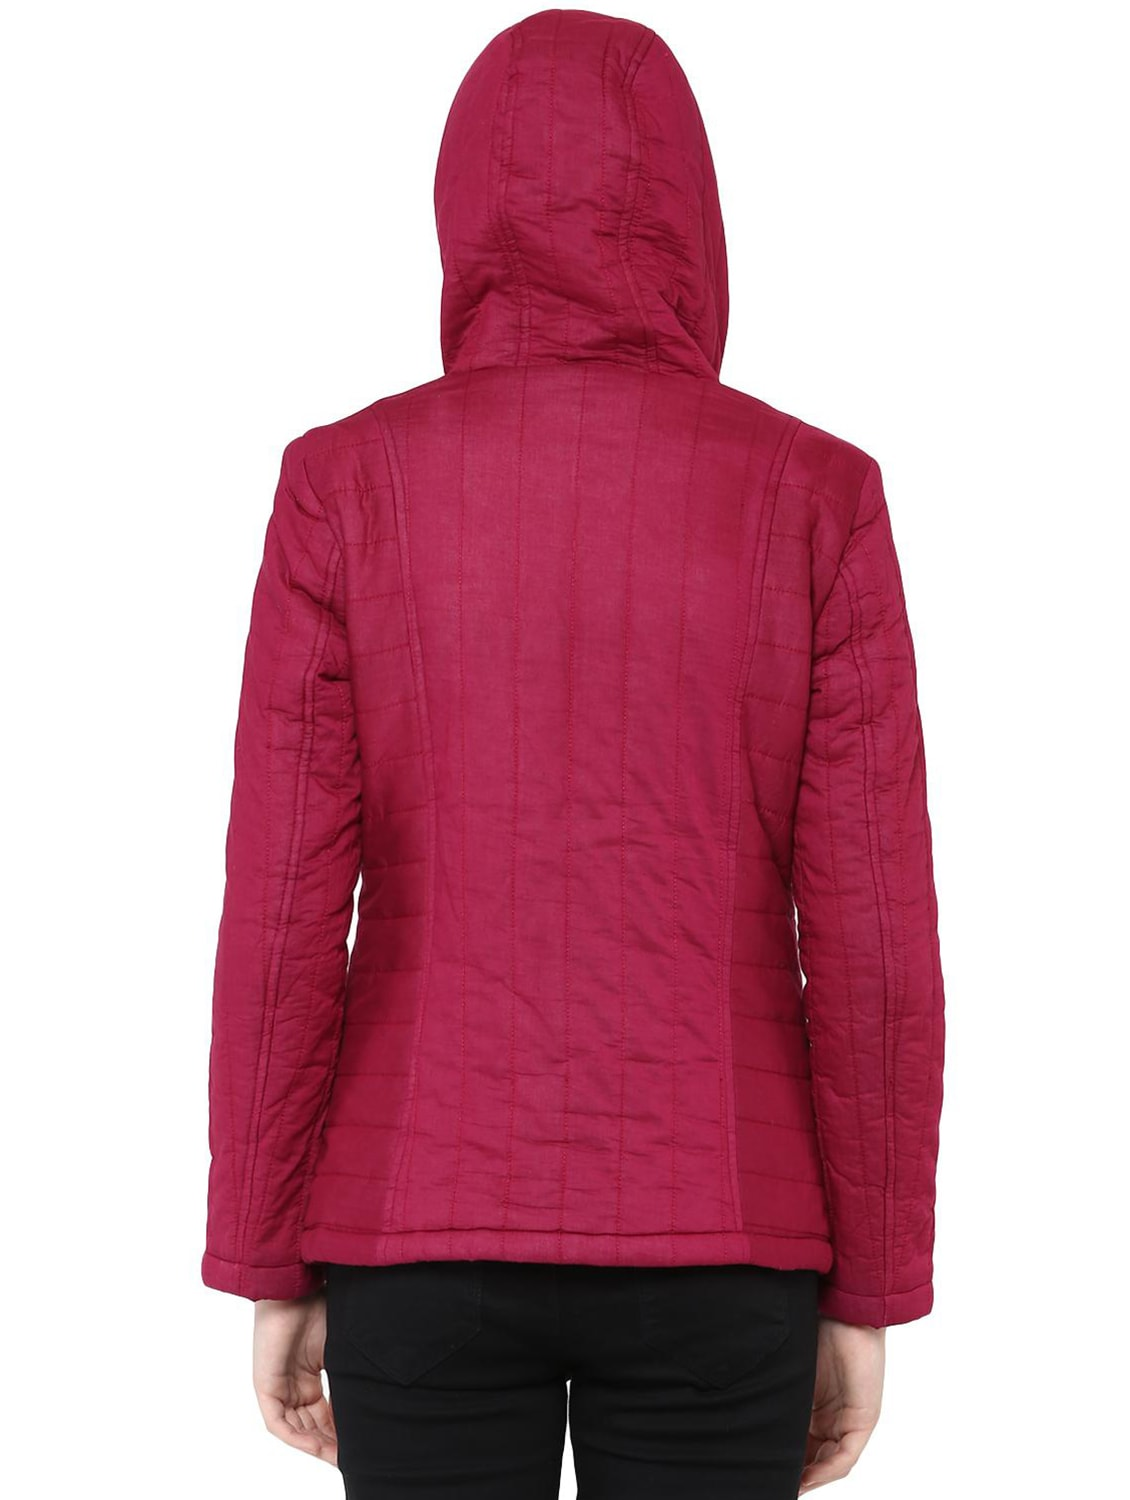 32fec1dd40e Purple Cotton Quilted Jacket For Women From The Vanca 1080